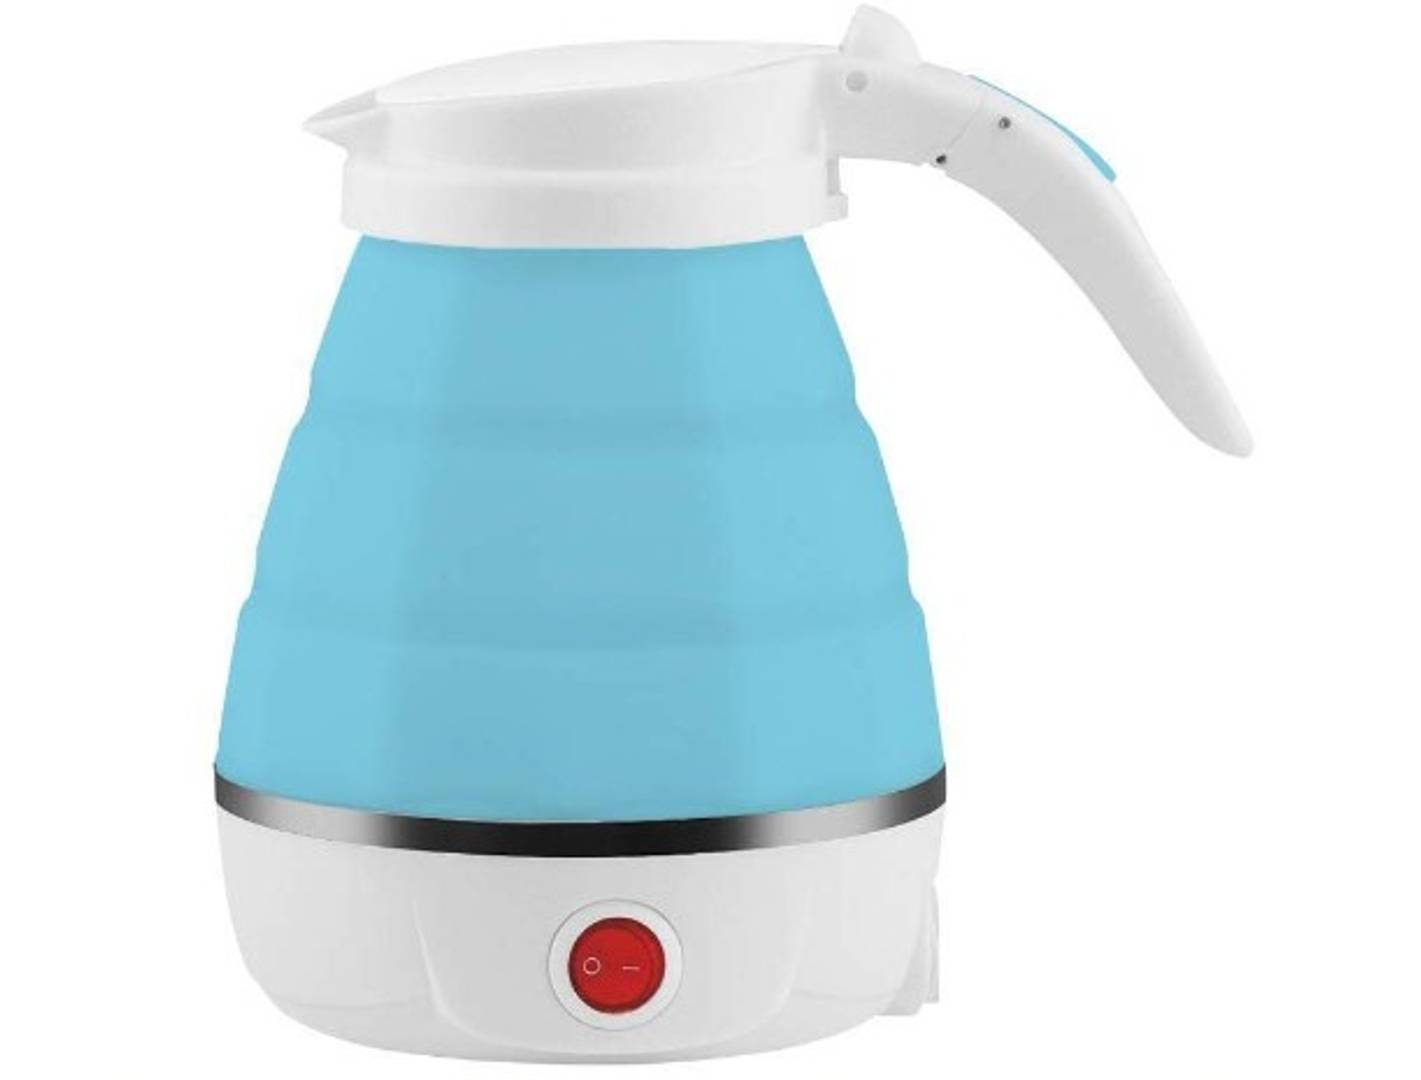 Foldable Electric Kettle,Travel Portable Kettle with Foldable Silicone Electric, 600ml Insulation Heating Boiler Tea Pot for Camping